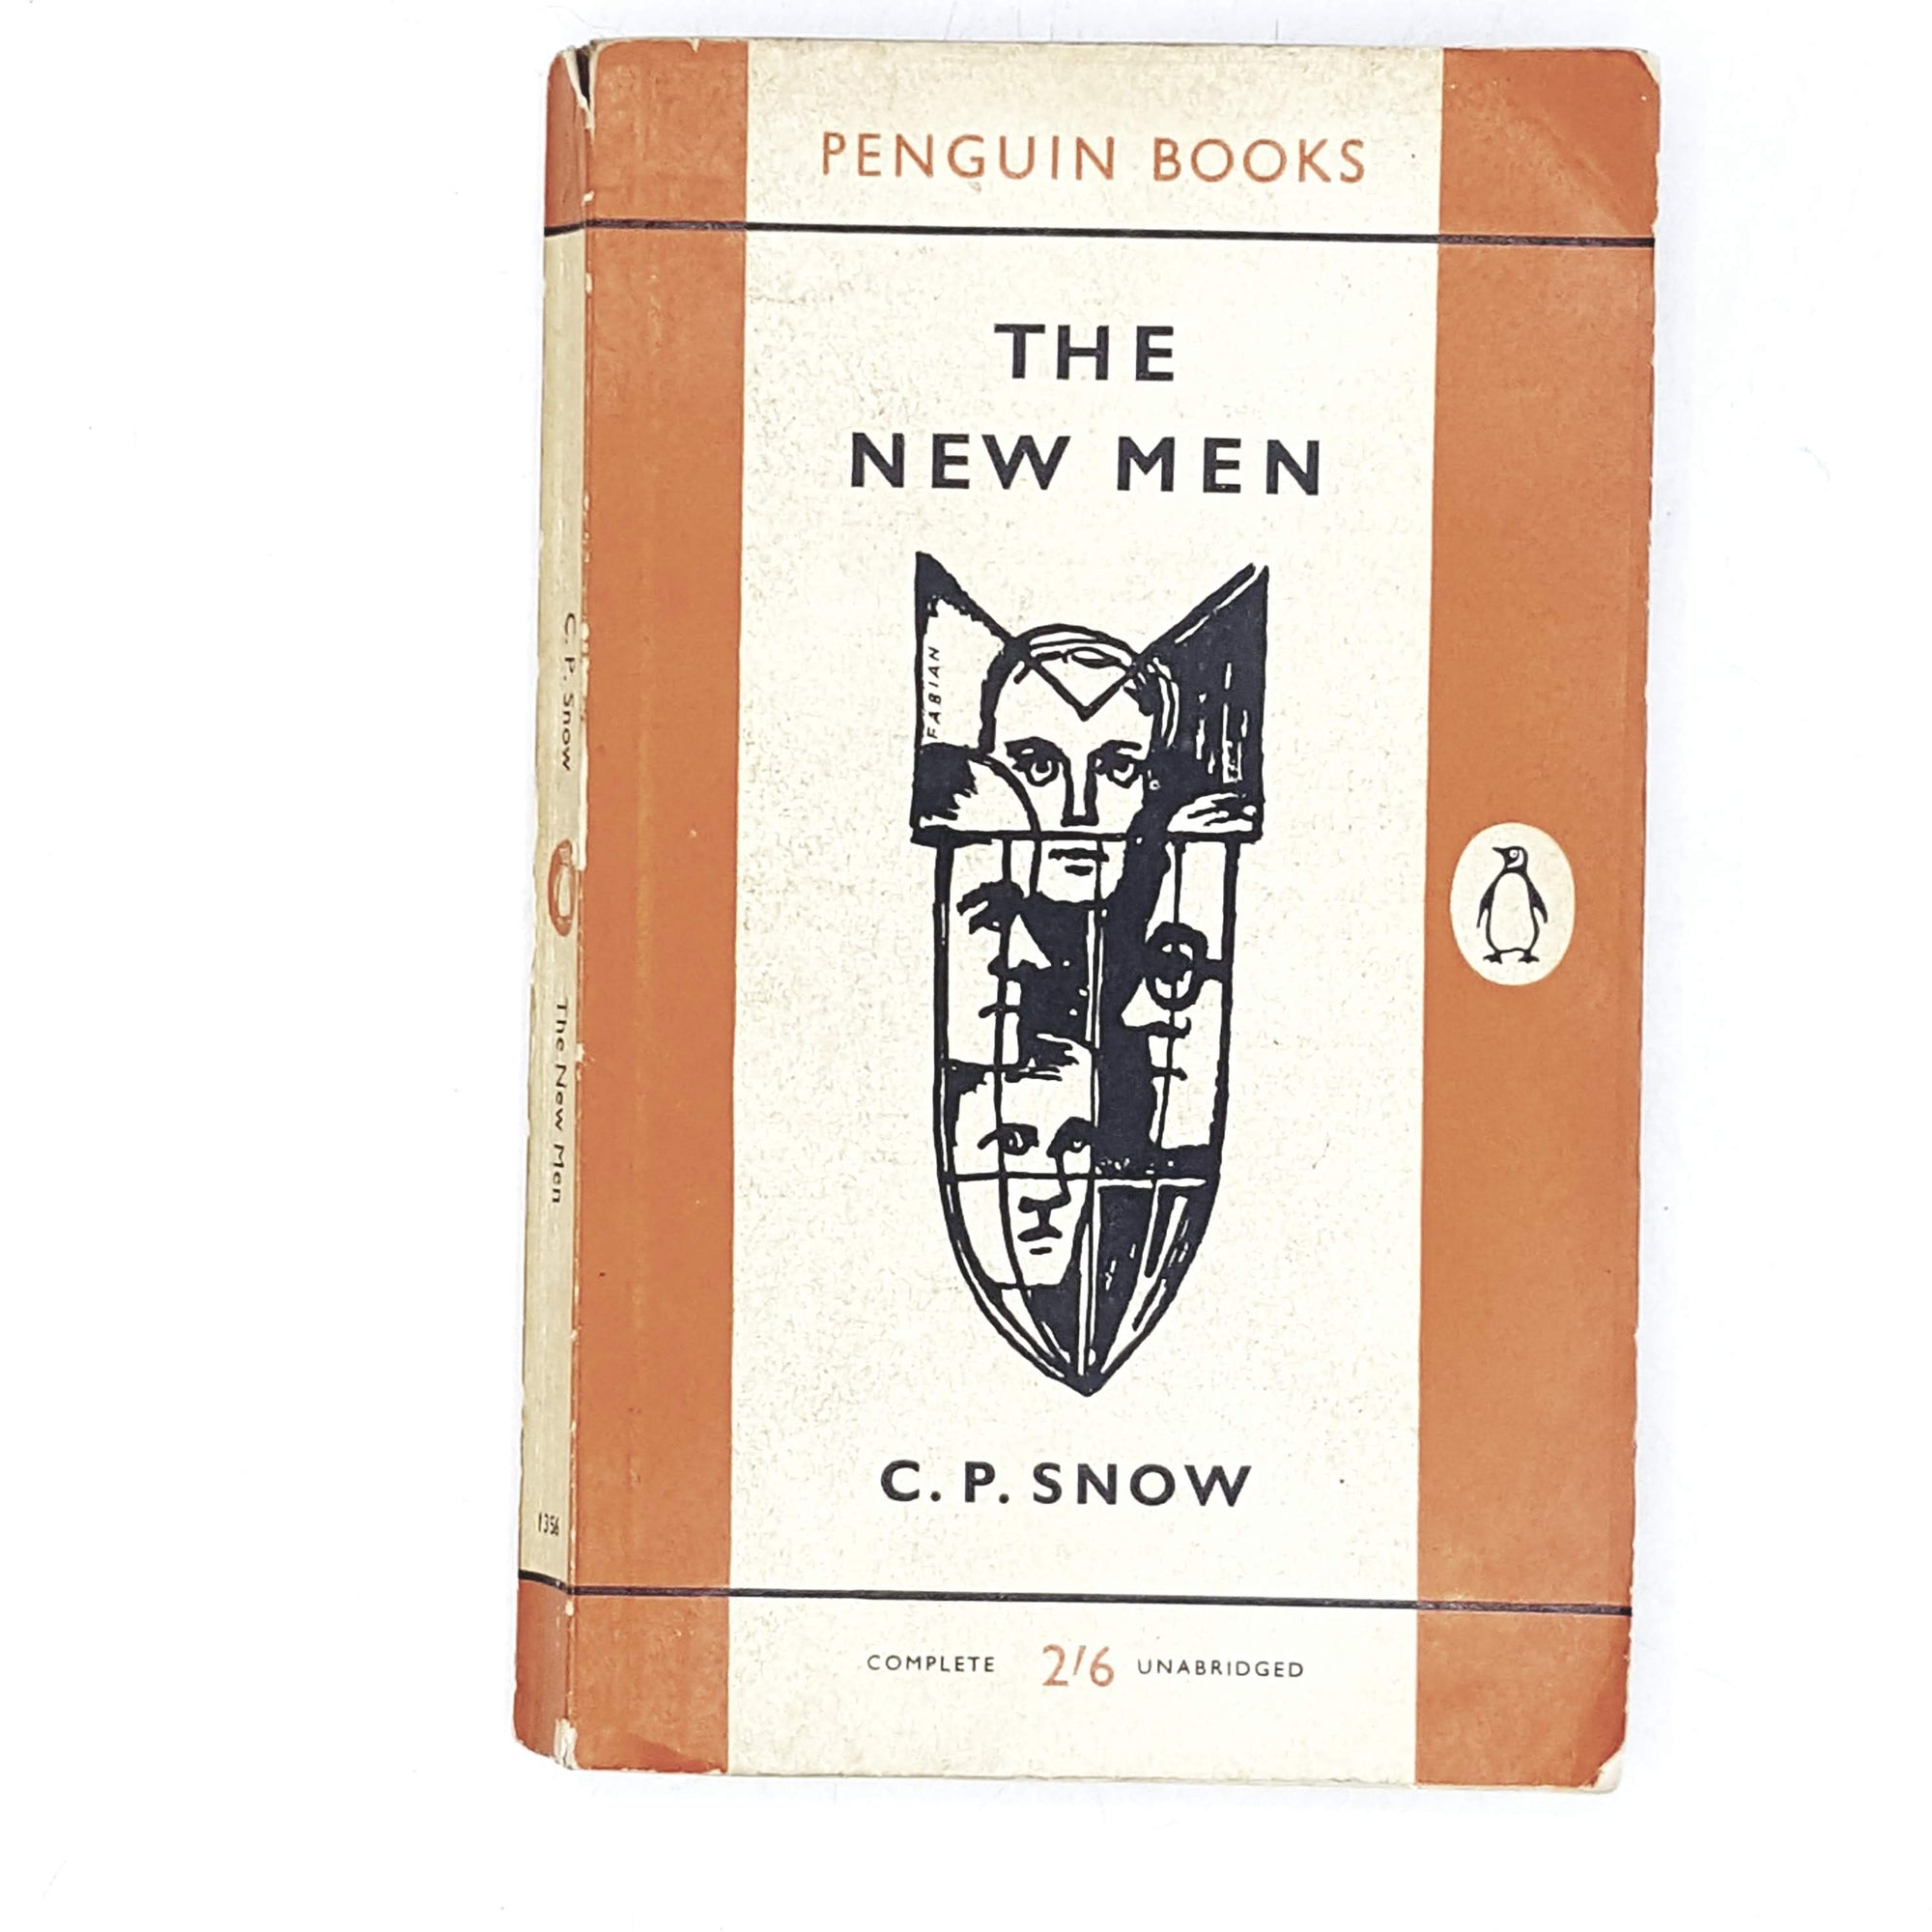 vintage-penguin-the-new-men-by-c.-p.-snow-1961-orange-rare-books-country-house-library